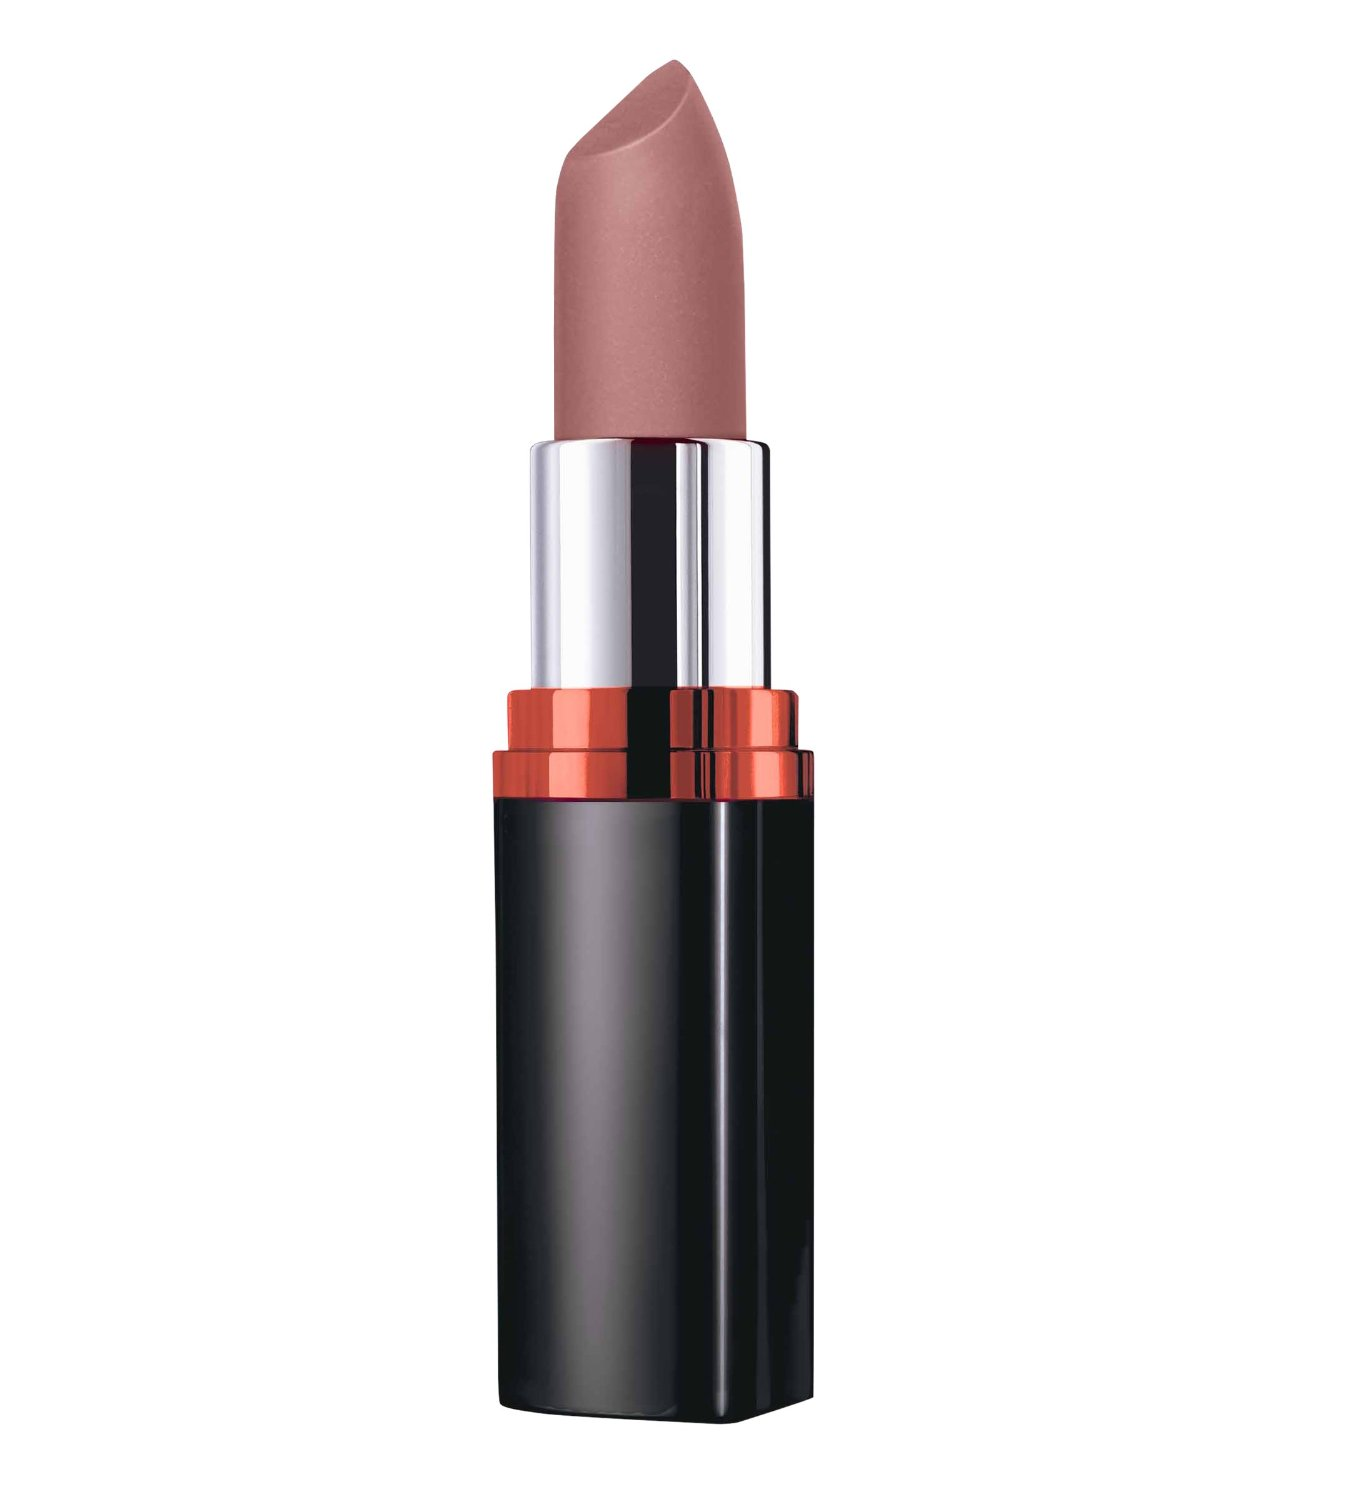 Top 12 Nude Lipsticks For Different Indian Skin Tones, Prices, Buy Online  New Love -8424